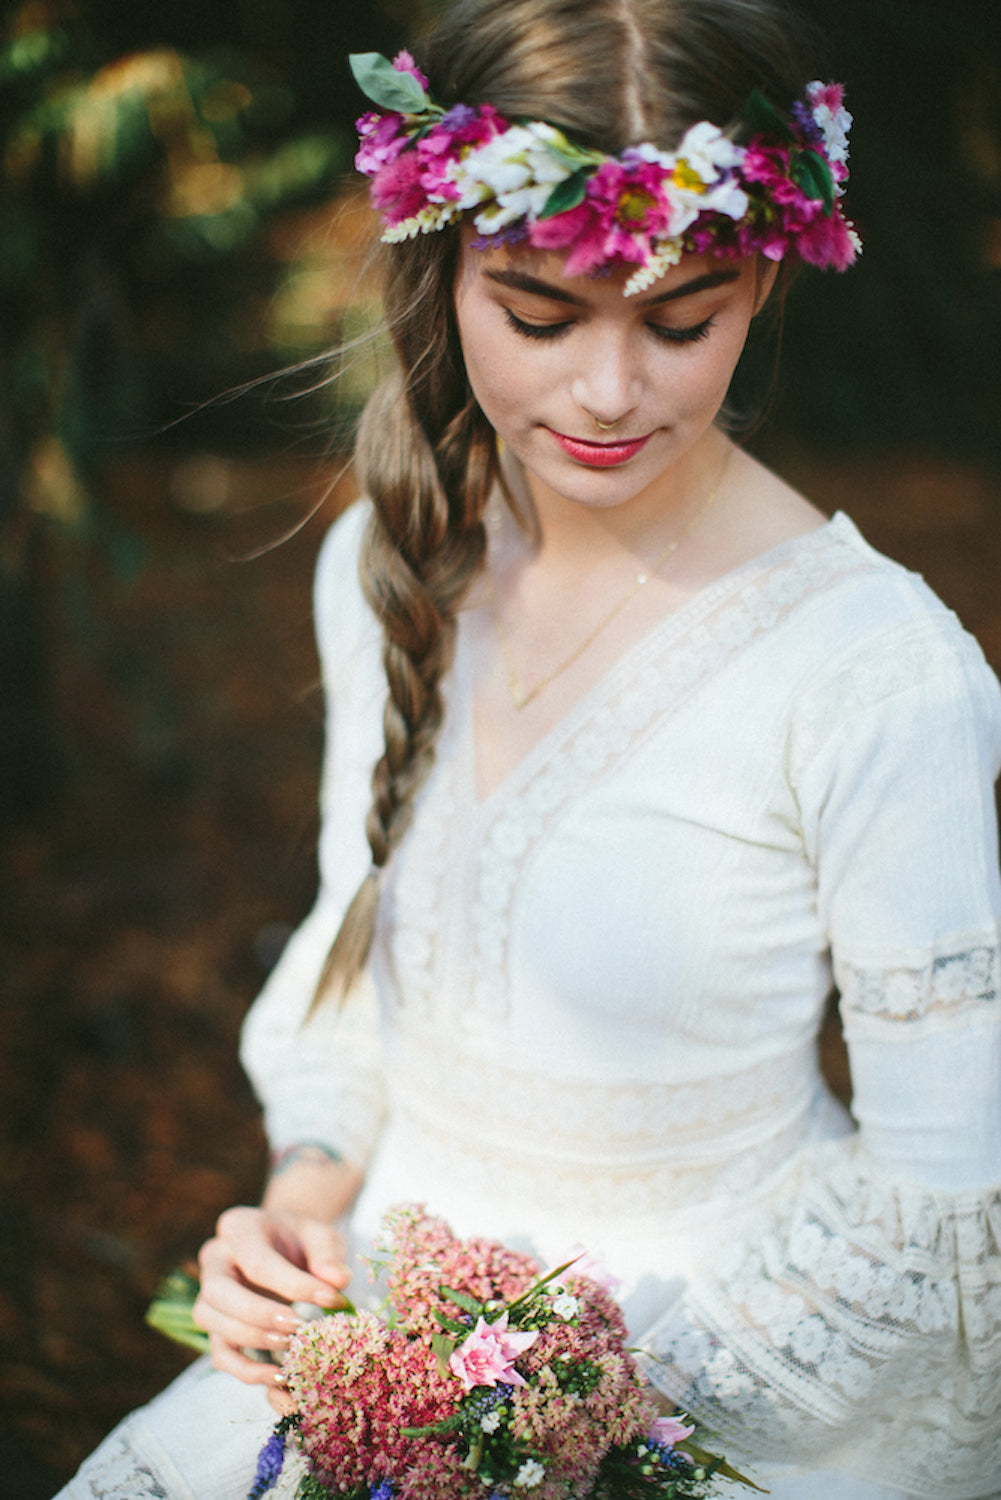 Katie Thirkill Bride Taylor Flower Crown Rock N Rose